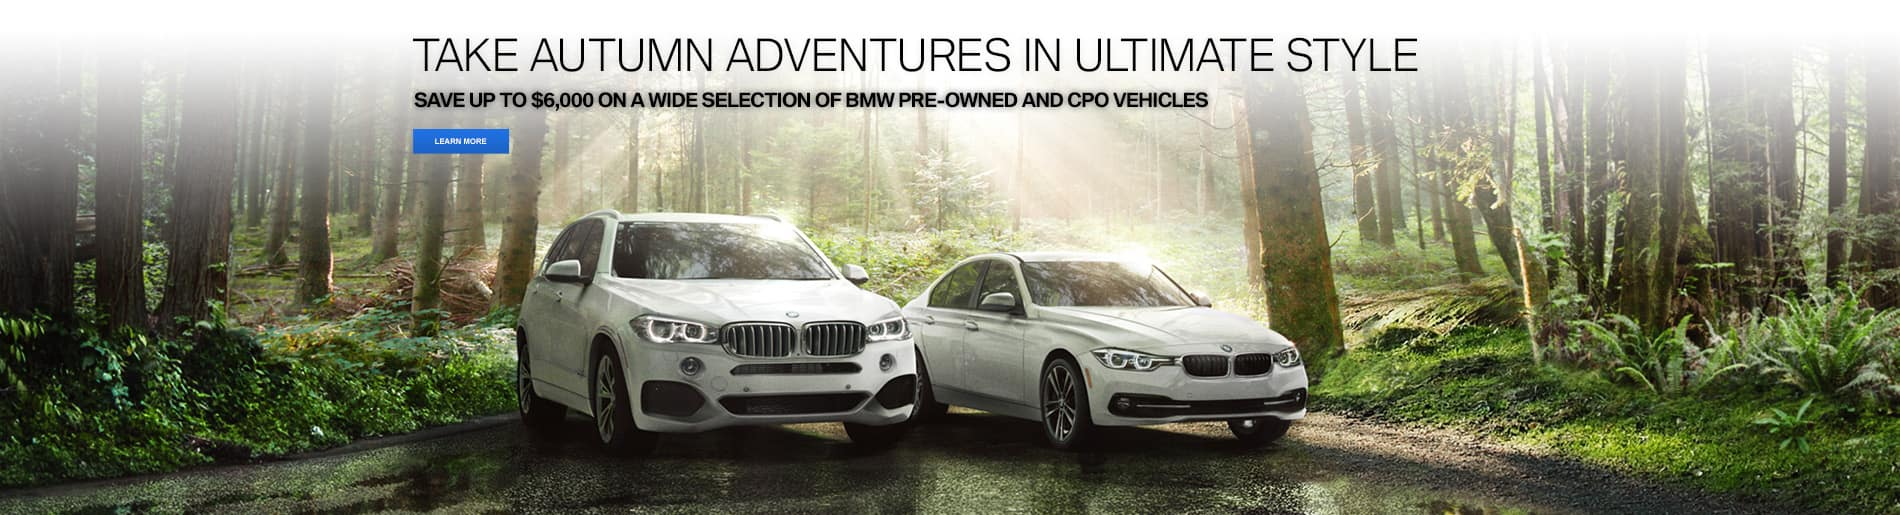 Bmw Dealer Near Me >> Bmw Pre Owned Used Bmw For Sale Near Me